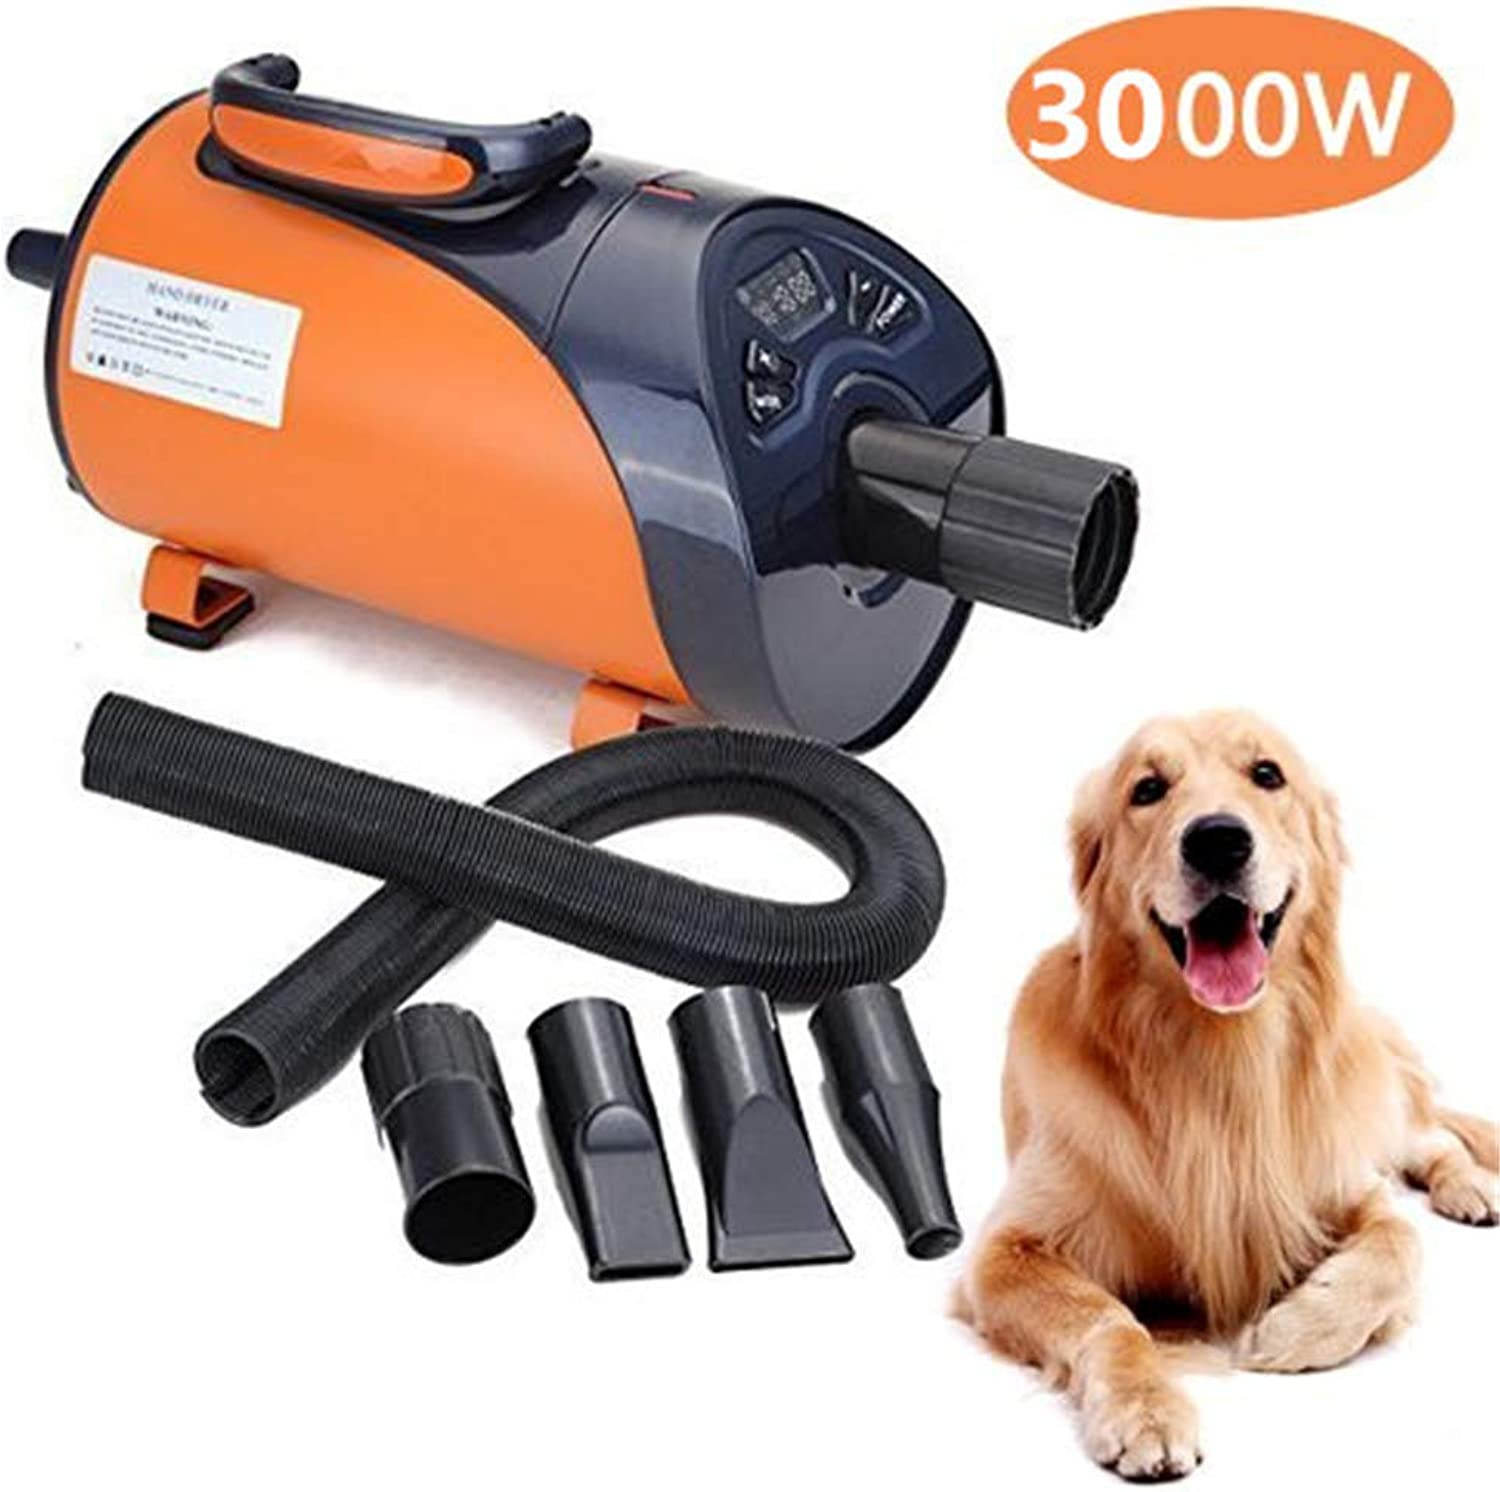 3000W Pet Dryer Professional Grooming Stepless Speed Dog Cat Pet Low Noise Adjust LED Display Hair Dryer Hairdryer Blaster Blower (orange)